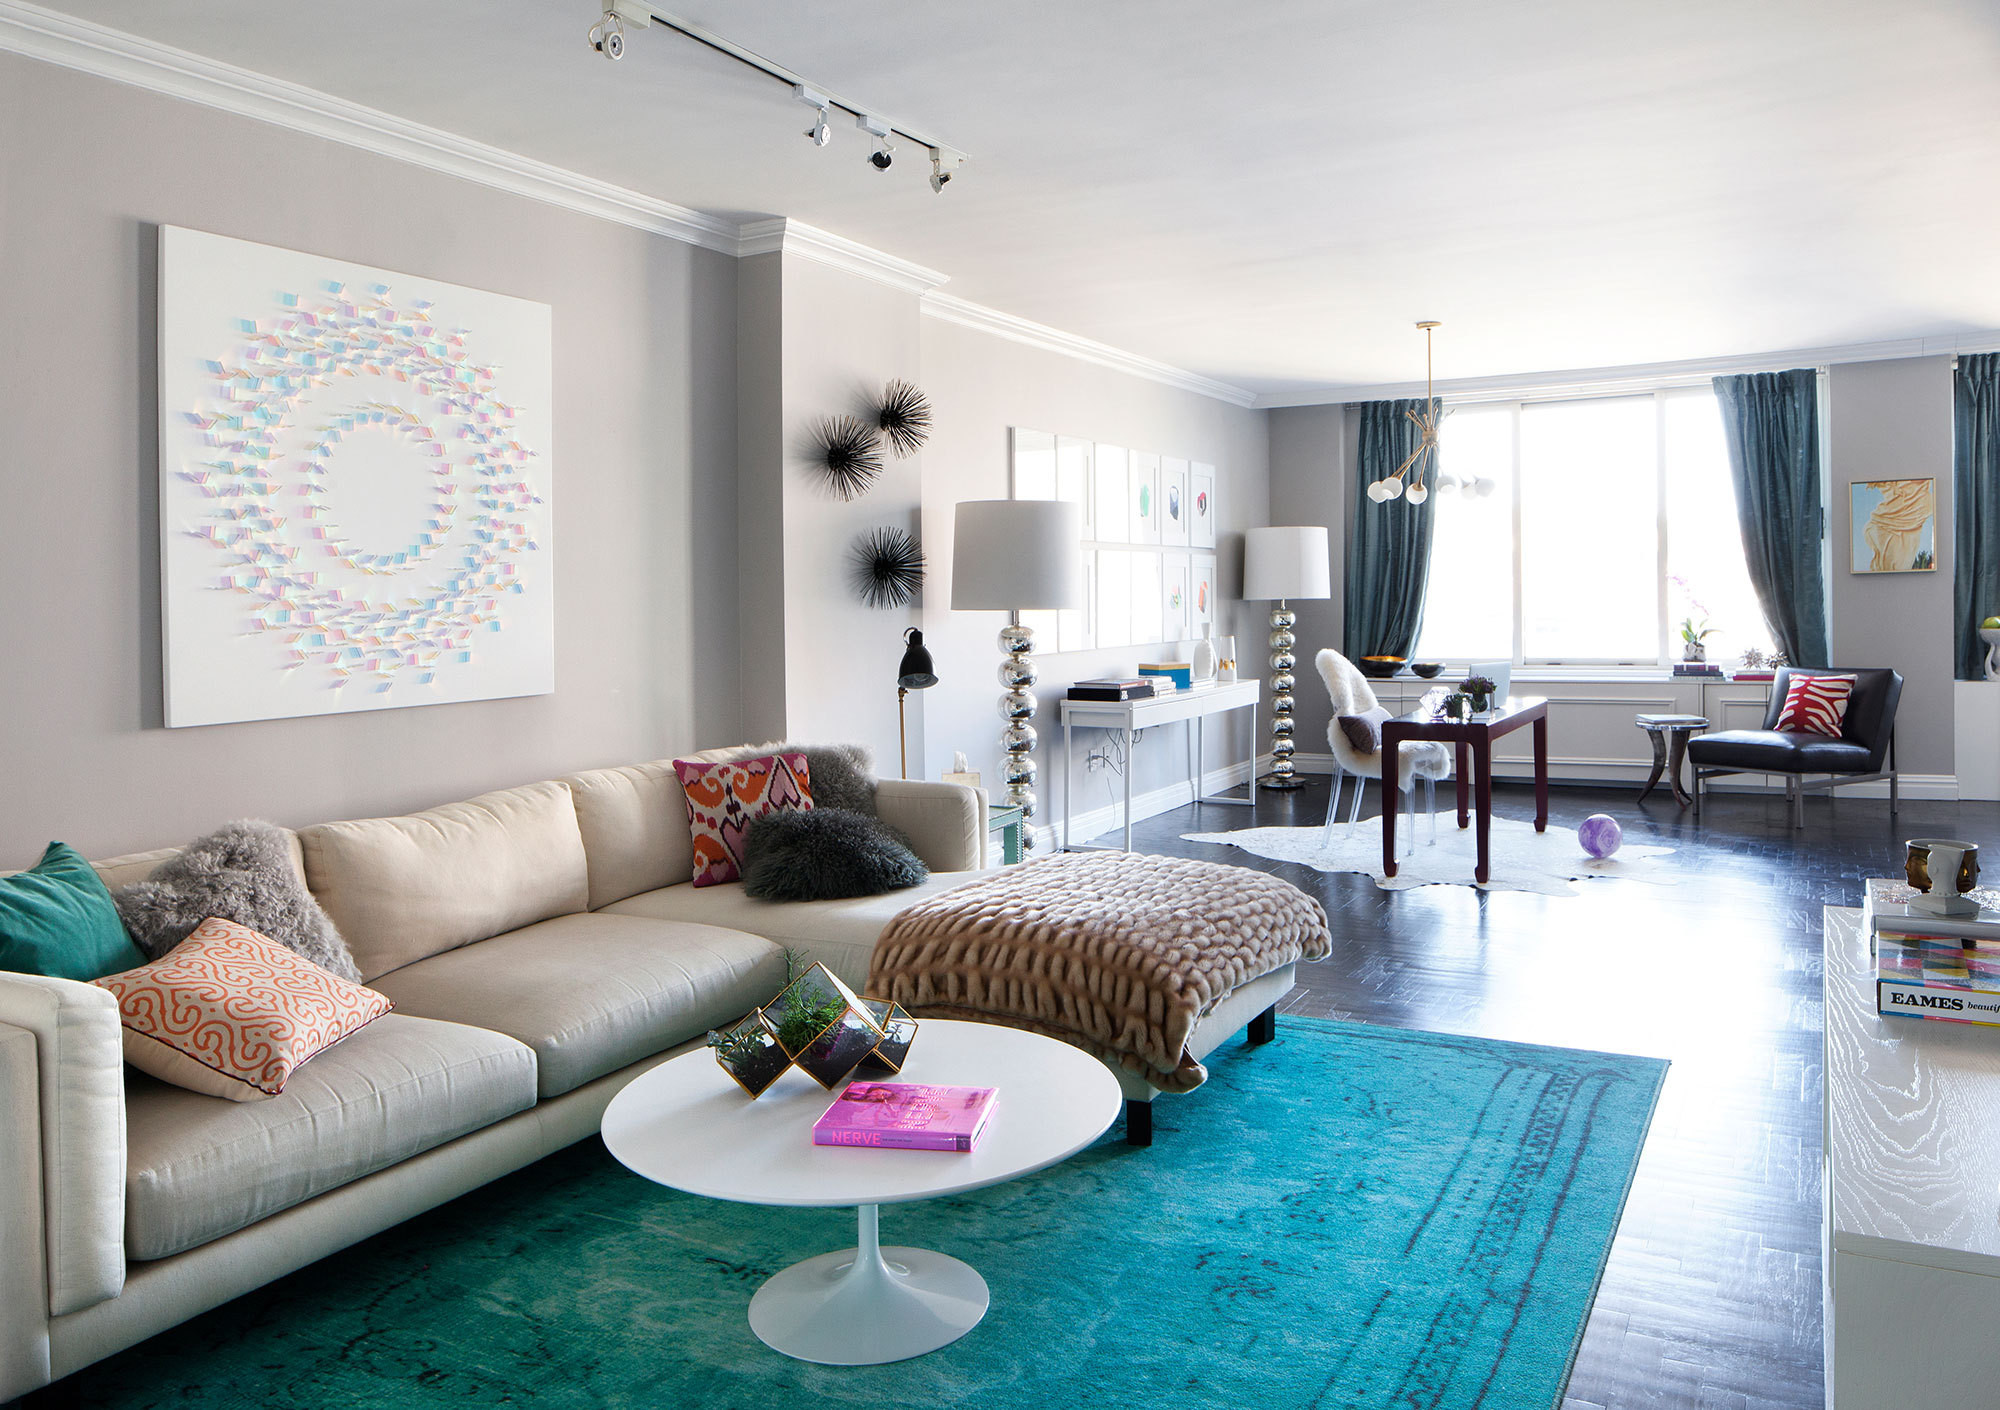 For her art collecting client and two young children, designer Diana Mui transformed a boring beige rental into a spaceequally suited for gallery-worthy displaysand casual family hang outs.